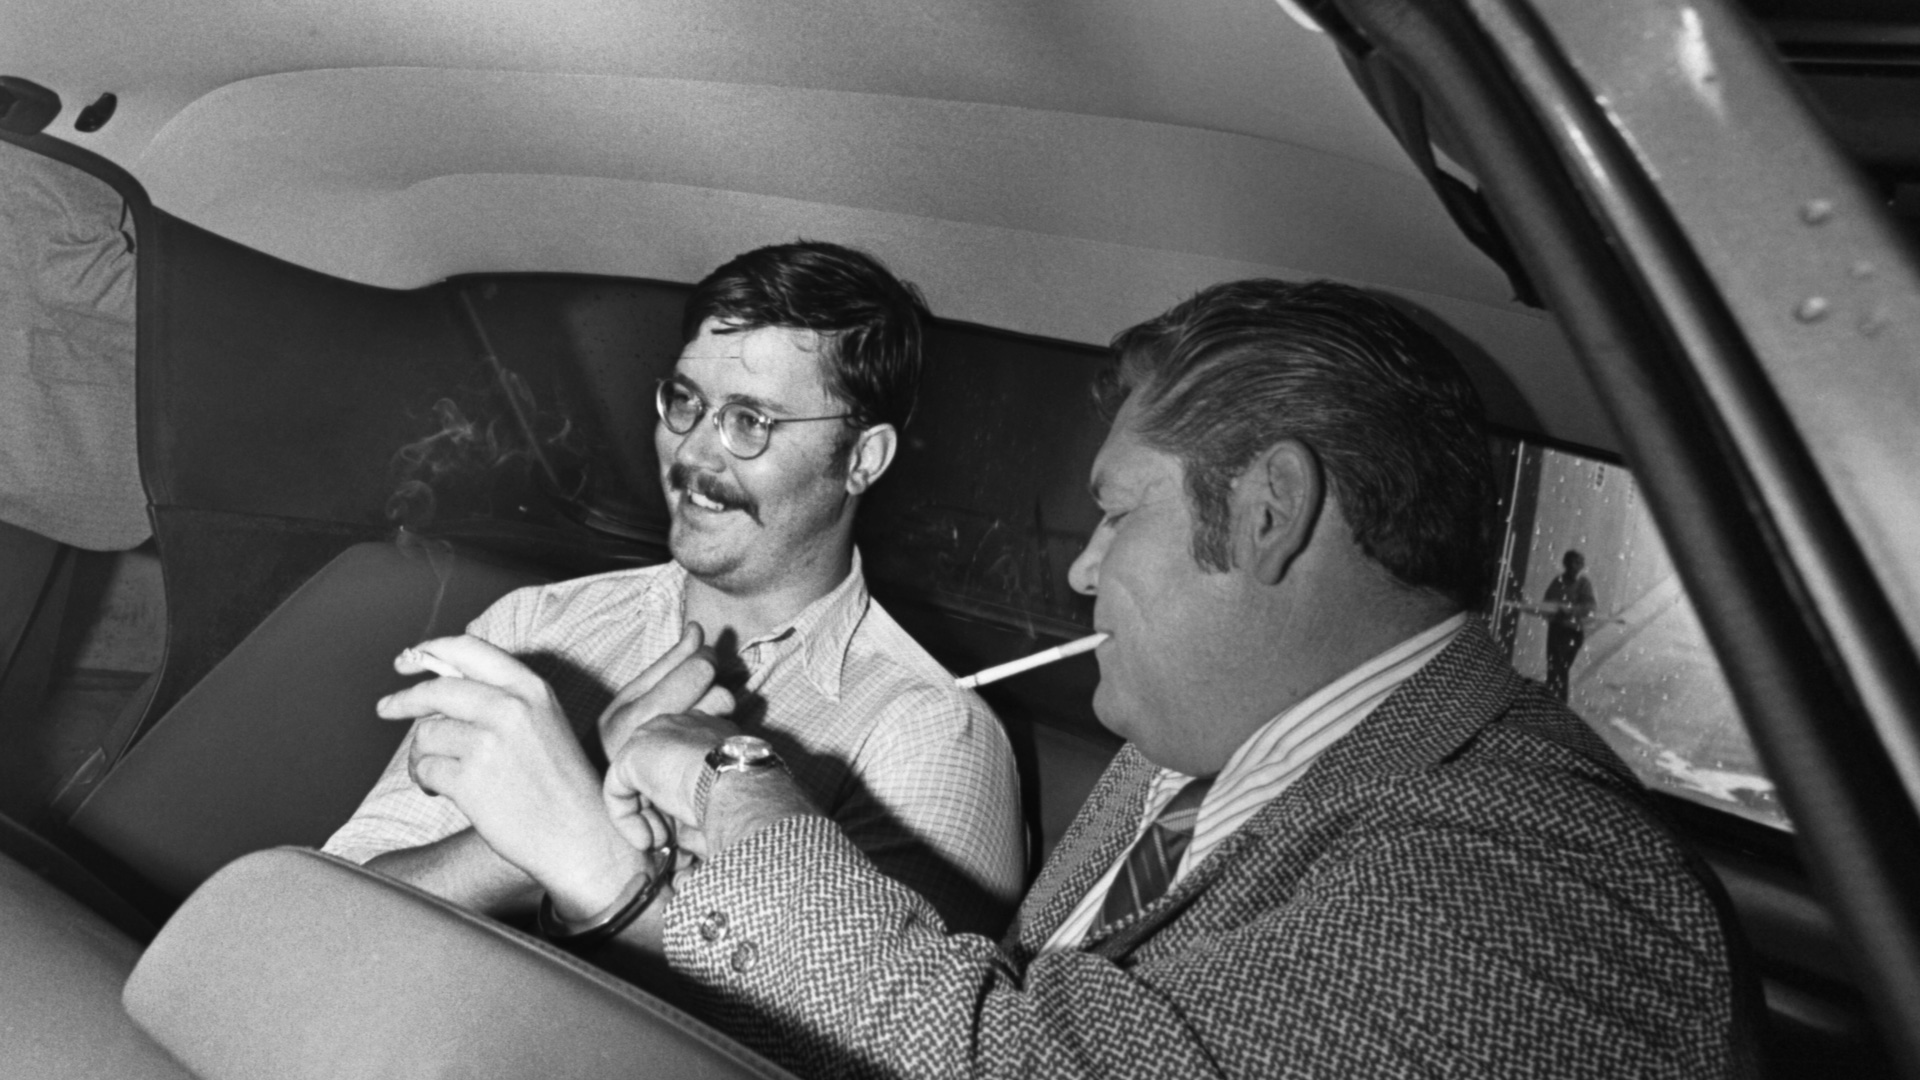 Edmund Kemper: Why Would a Serial Killer Help the FBI Understand Other Serial Killers?